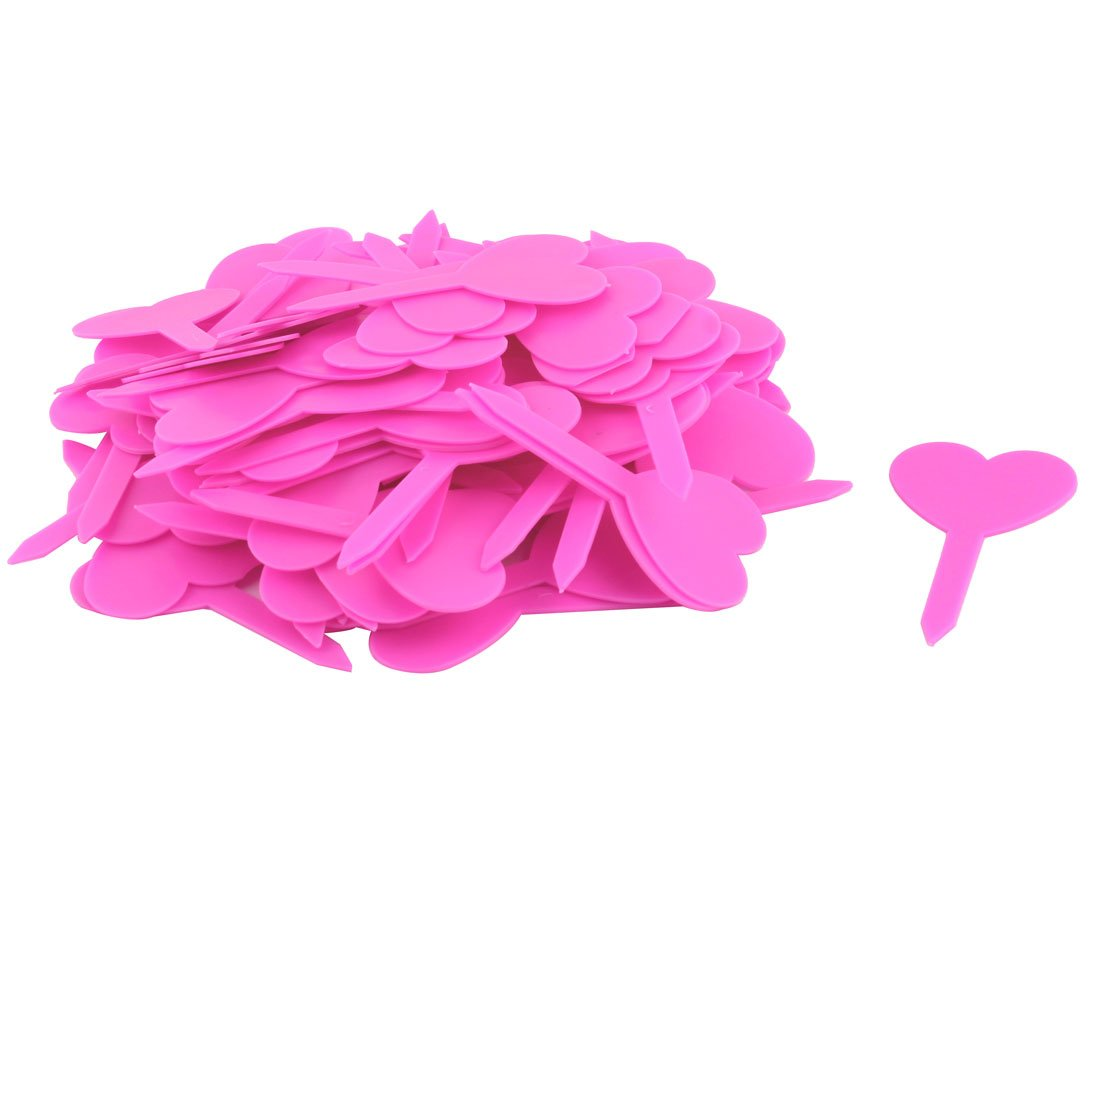 uxcell Plastic Household Garden Heart Shaped Plant Seed Tag Label Marker Stick 100pcs Blue a16083000ux0187